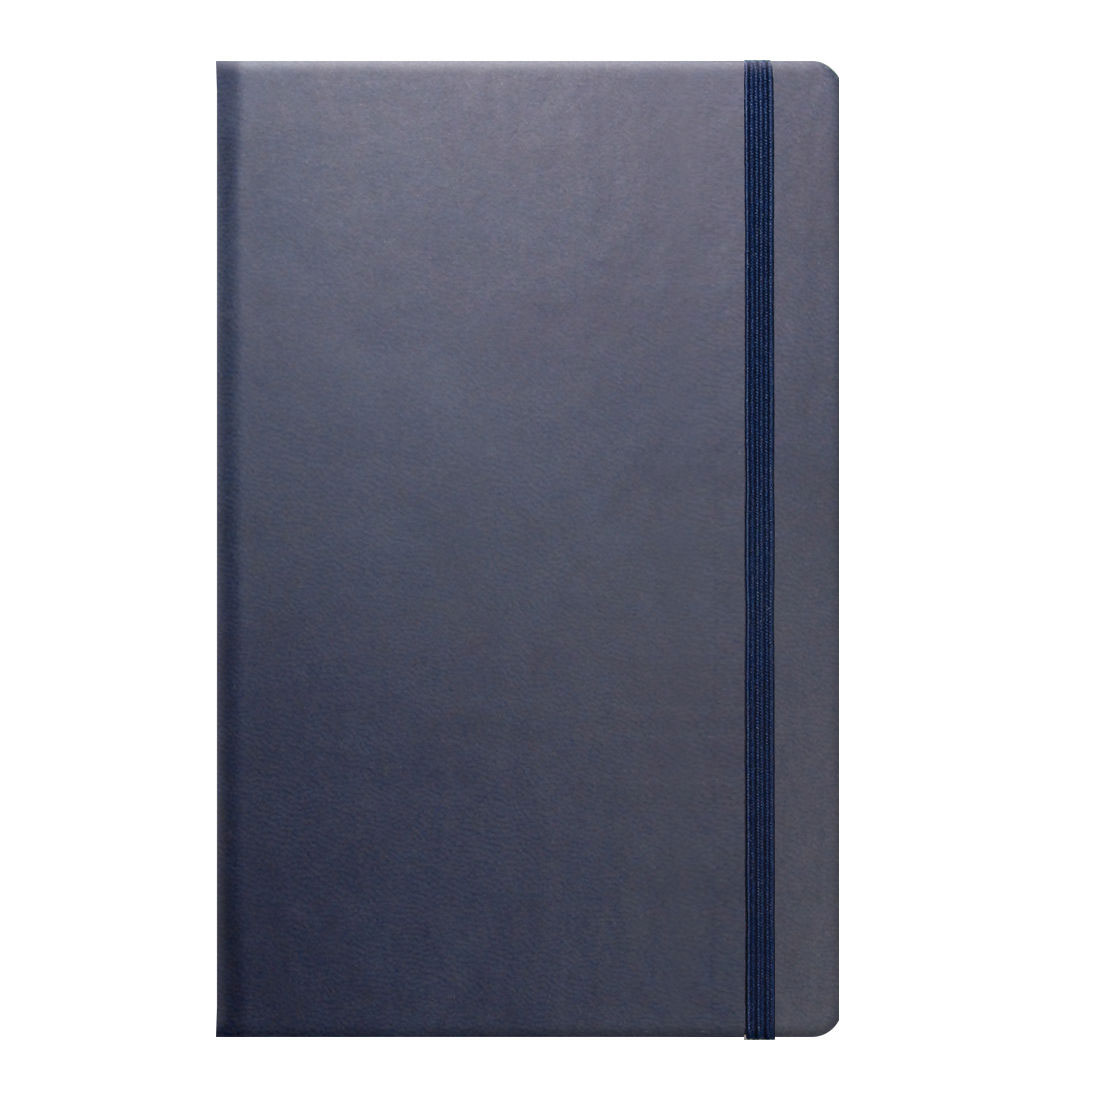 Castelli Notebook Range - Castelli Notebook - Blue